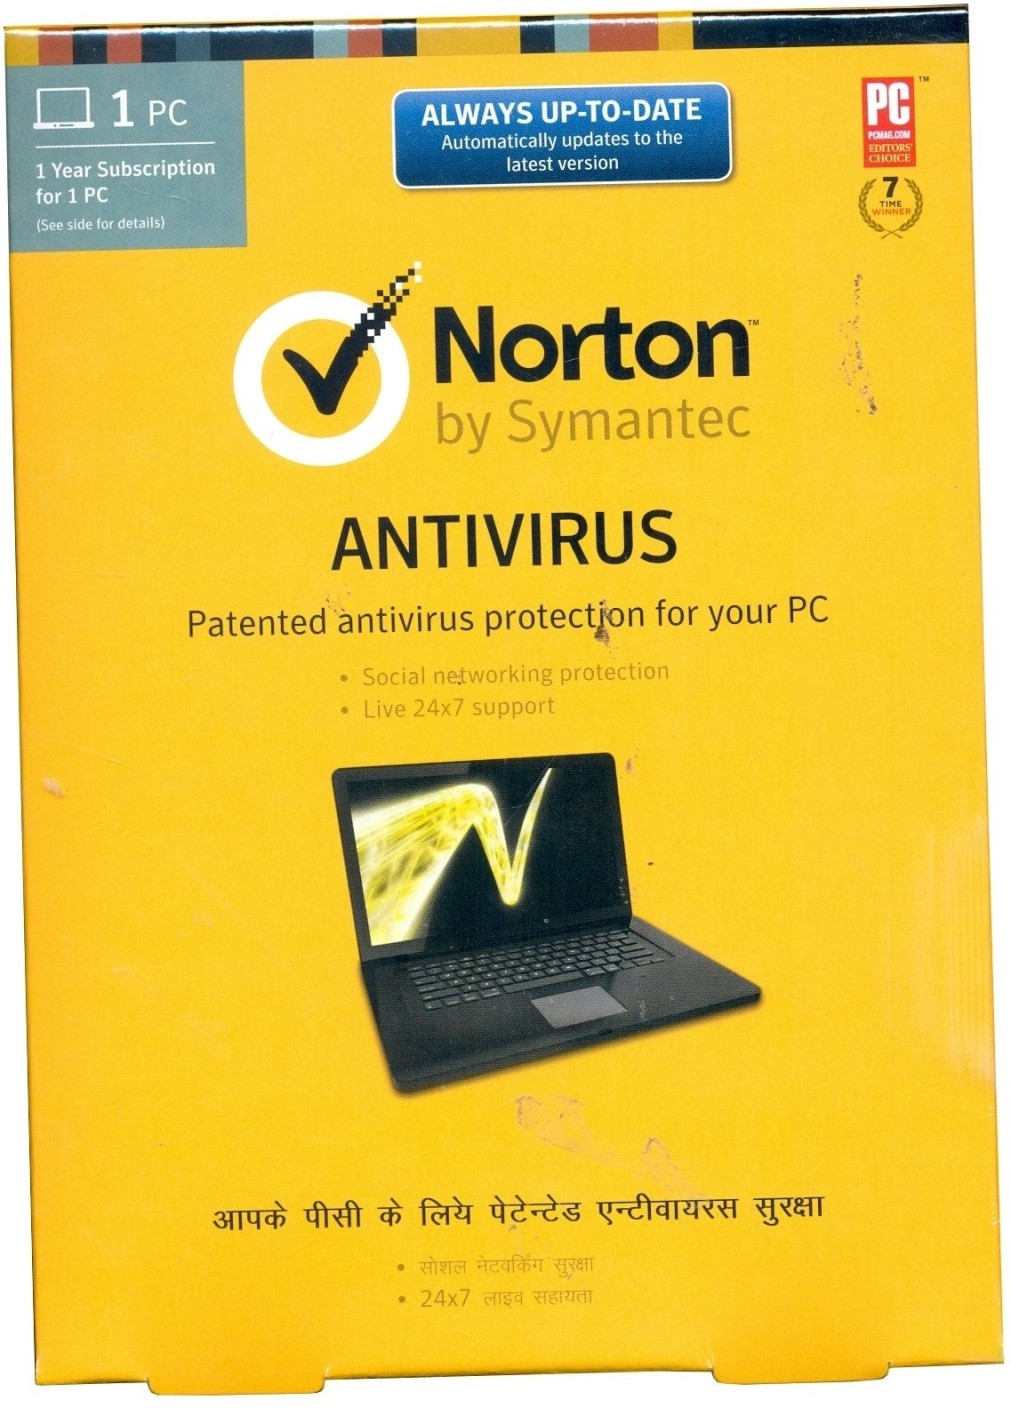 Norton Antivirus Images